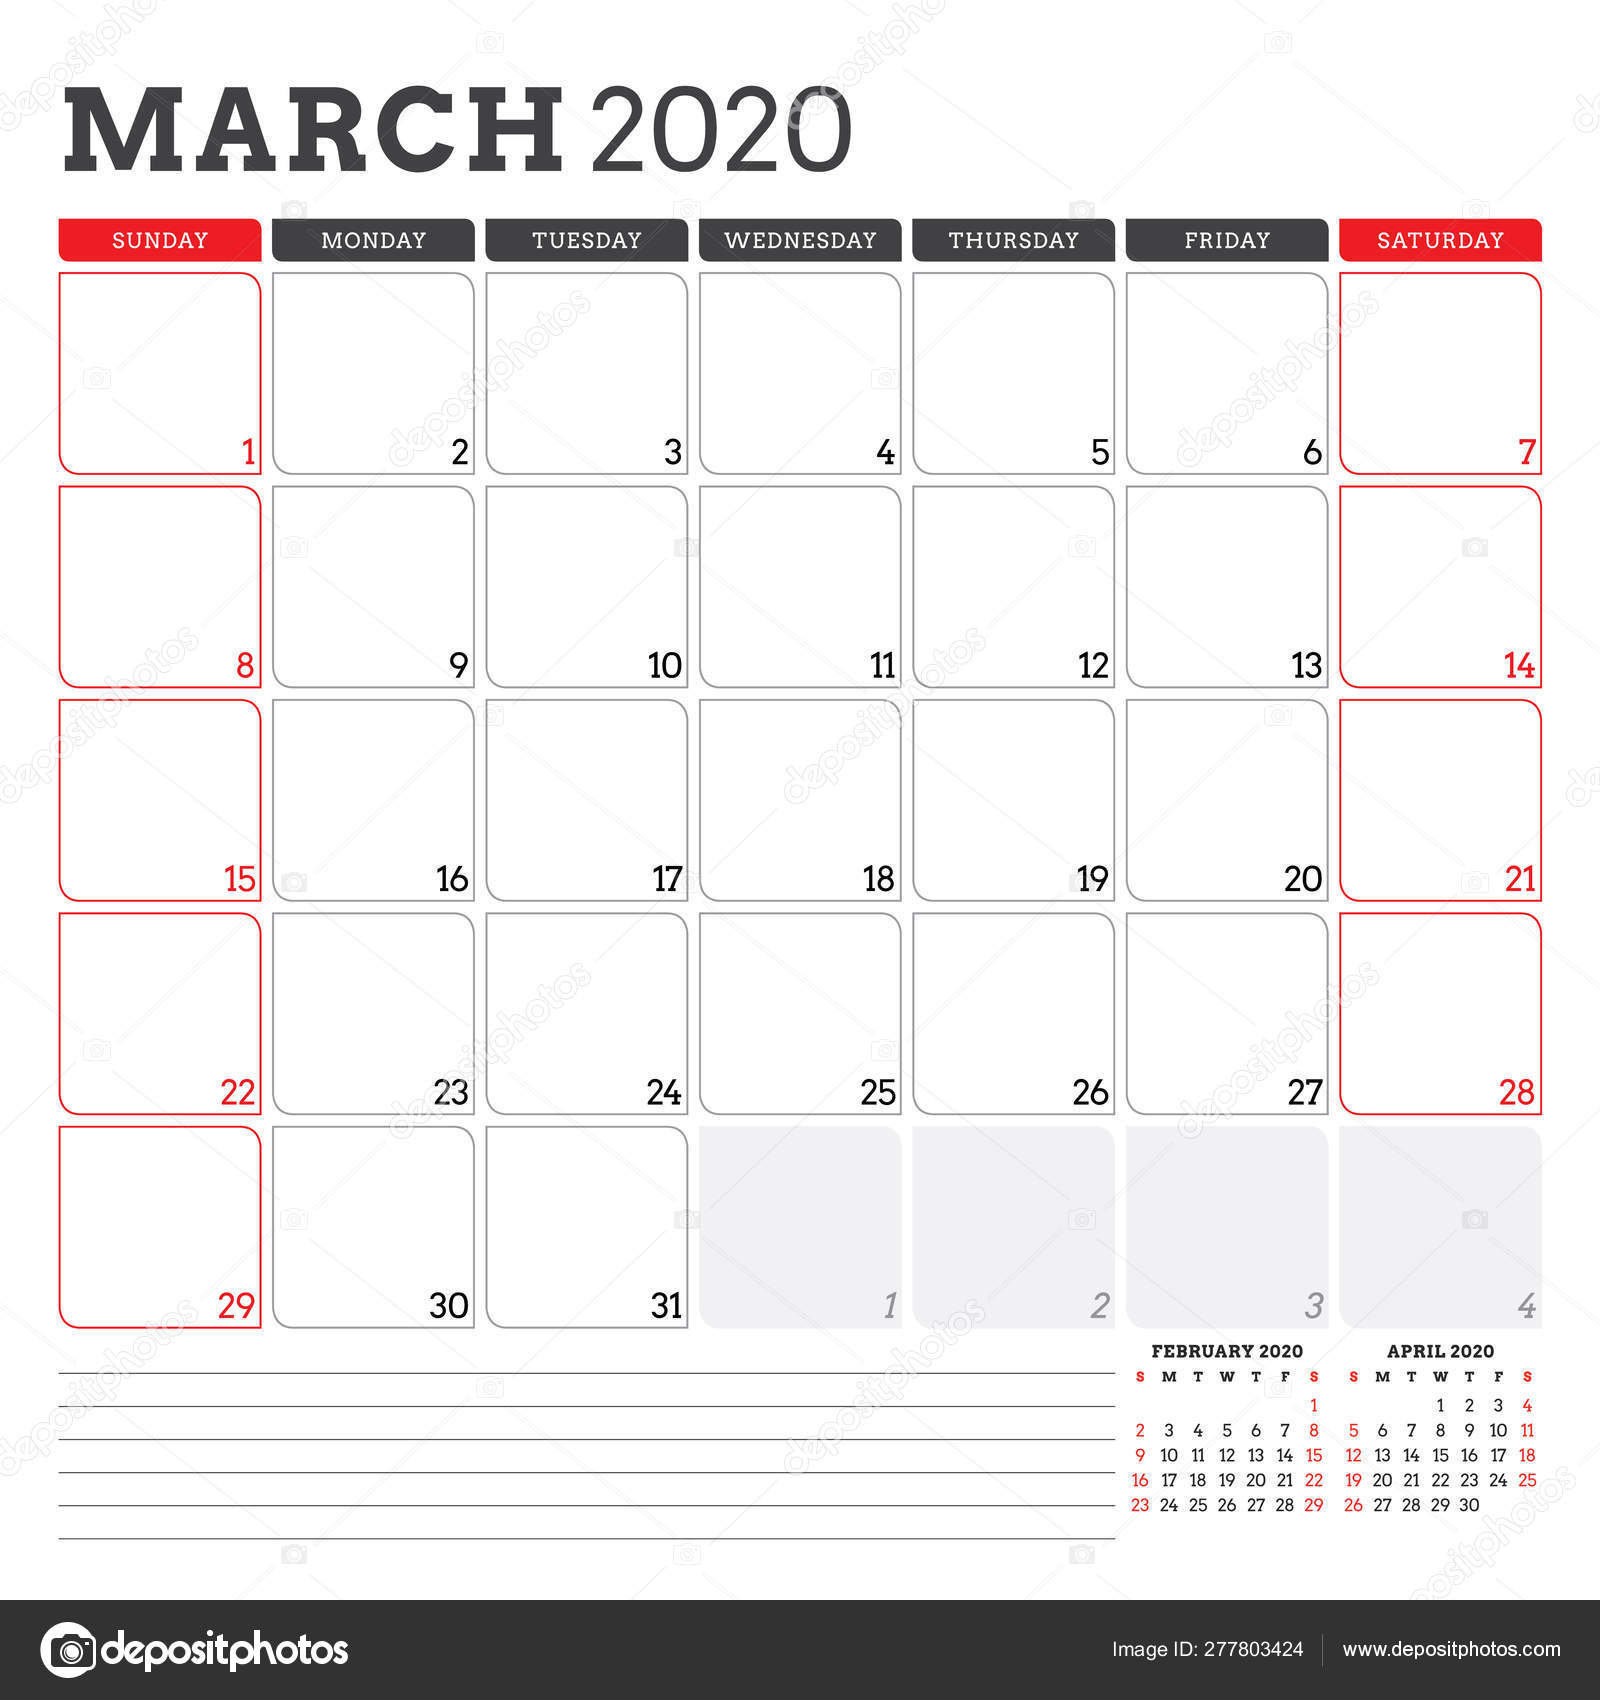 Calendar Planner For March 2020. Week Starts On Sunday throughout Printable Week Calendar